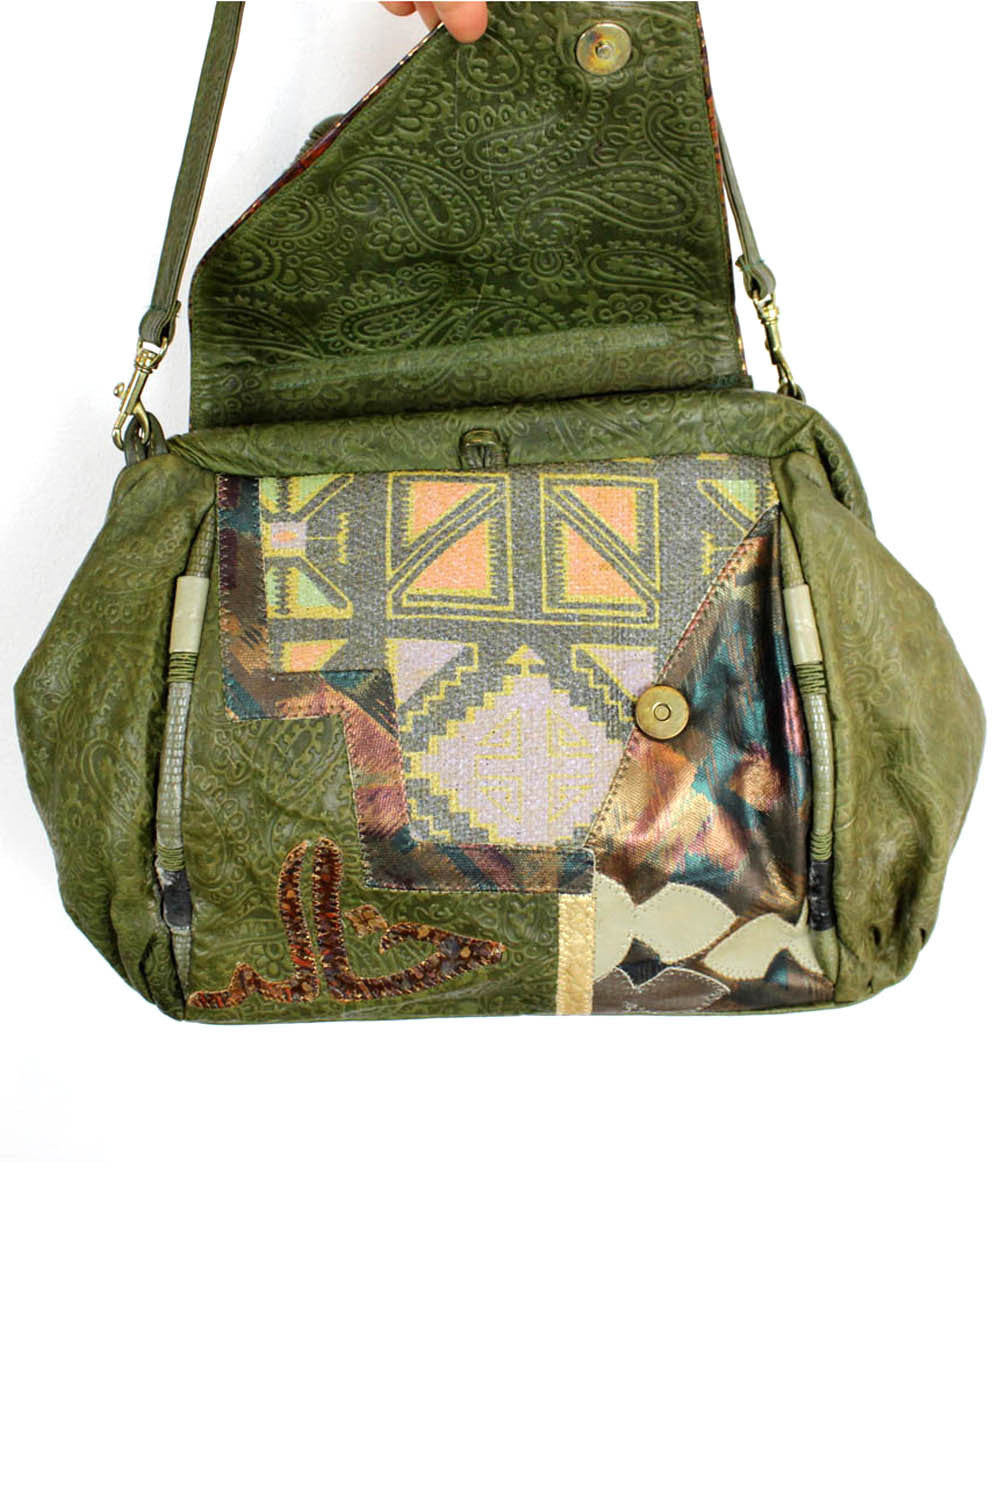 green tribal bag